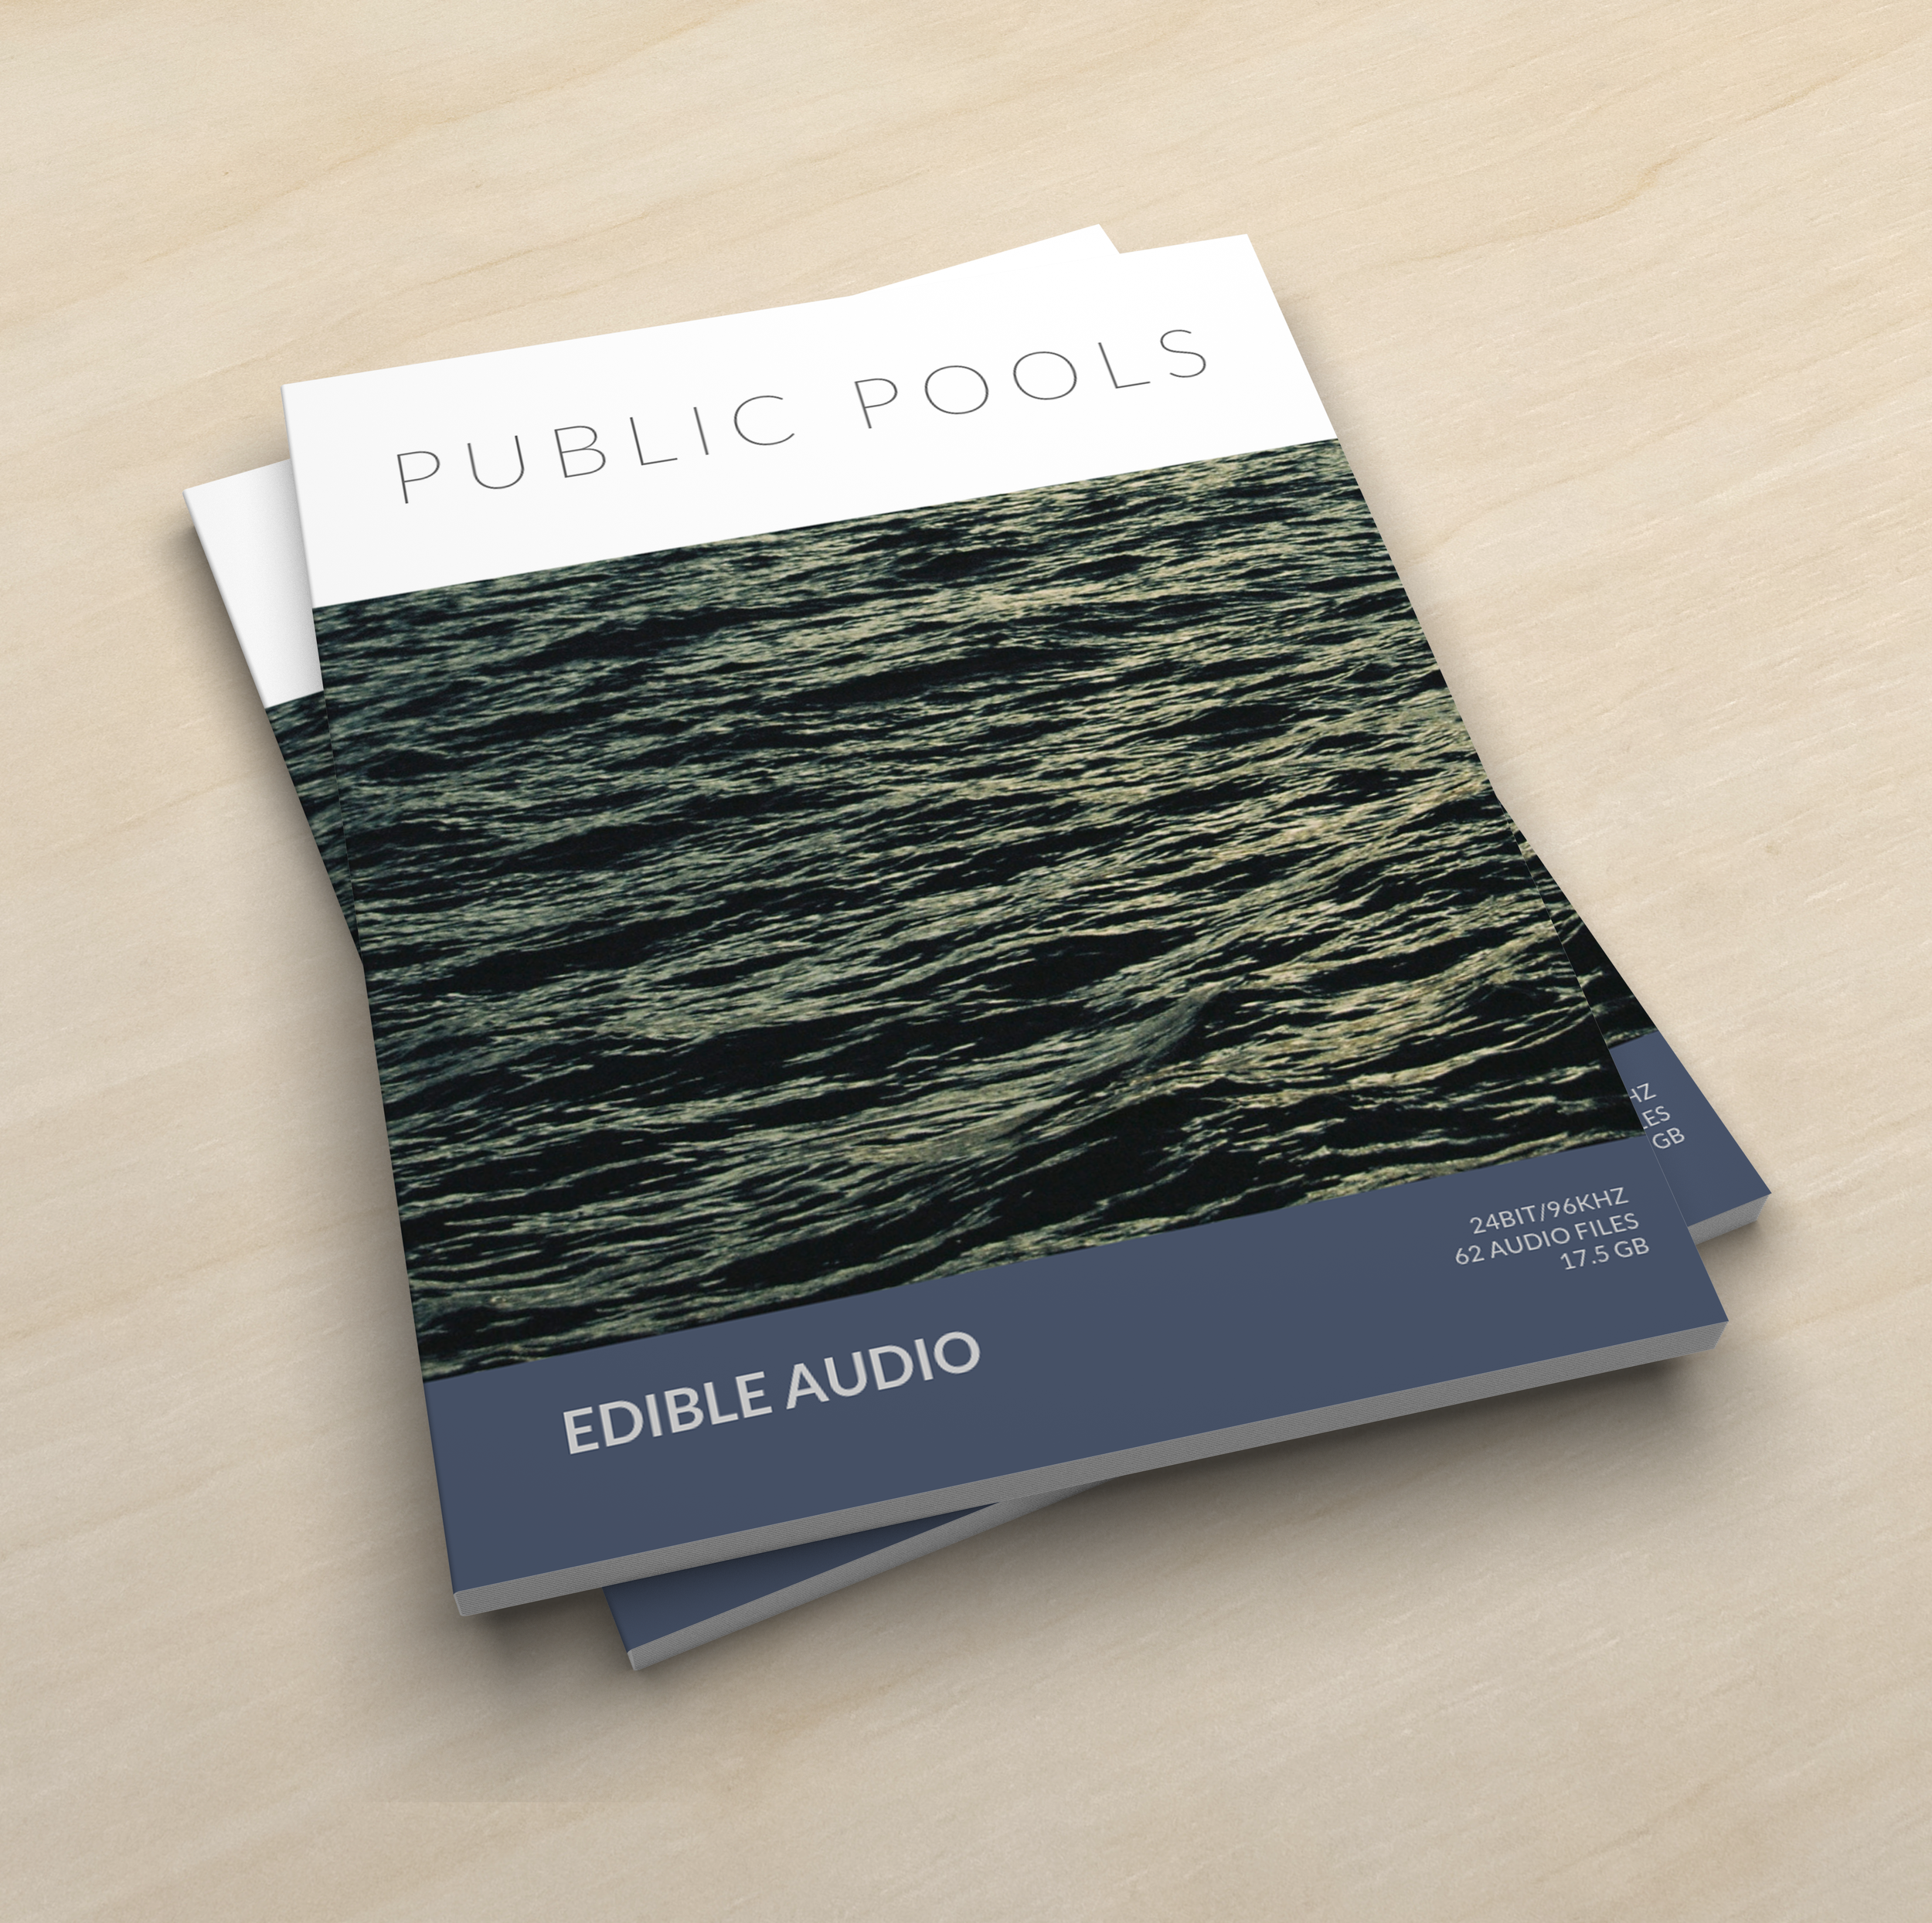 Public Pools - 24bit/96khz62 audio files17.5 GBAvailable in stereo or 5.0File/Metadata DescriptionEquipment used:Microphone: DPA 5100Recorder: Sound Devices 788T